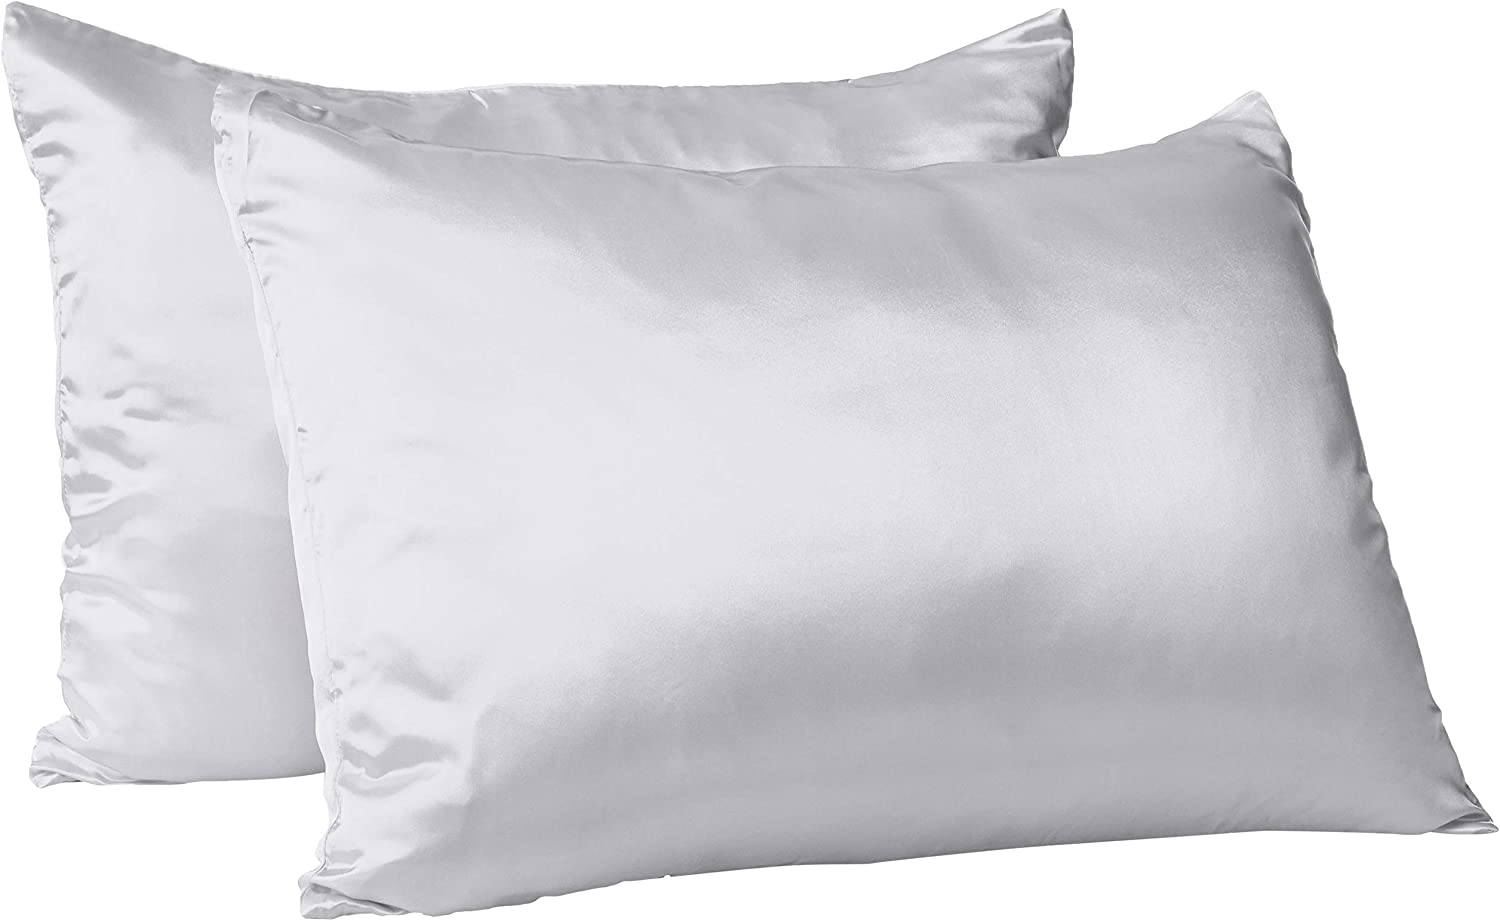 Morning Glamour 2 Pack Signature Box Pillowcases Silver Amazon Ca Home Kitchen